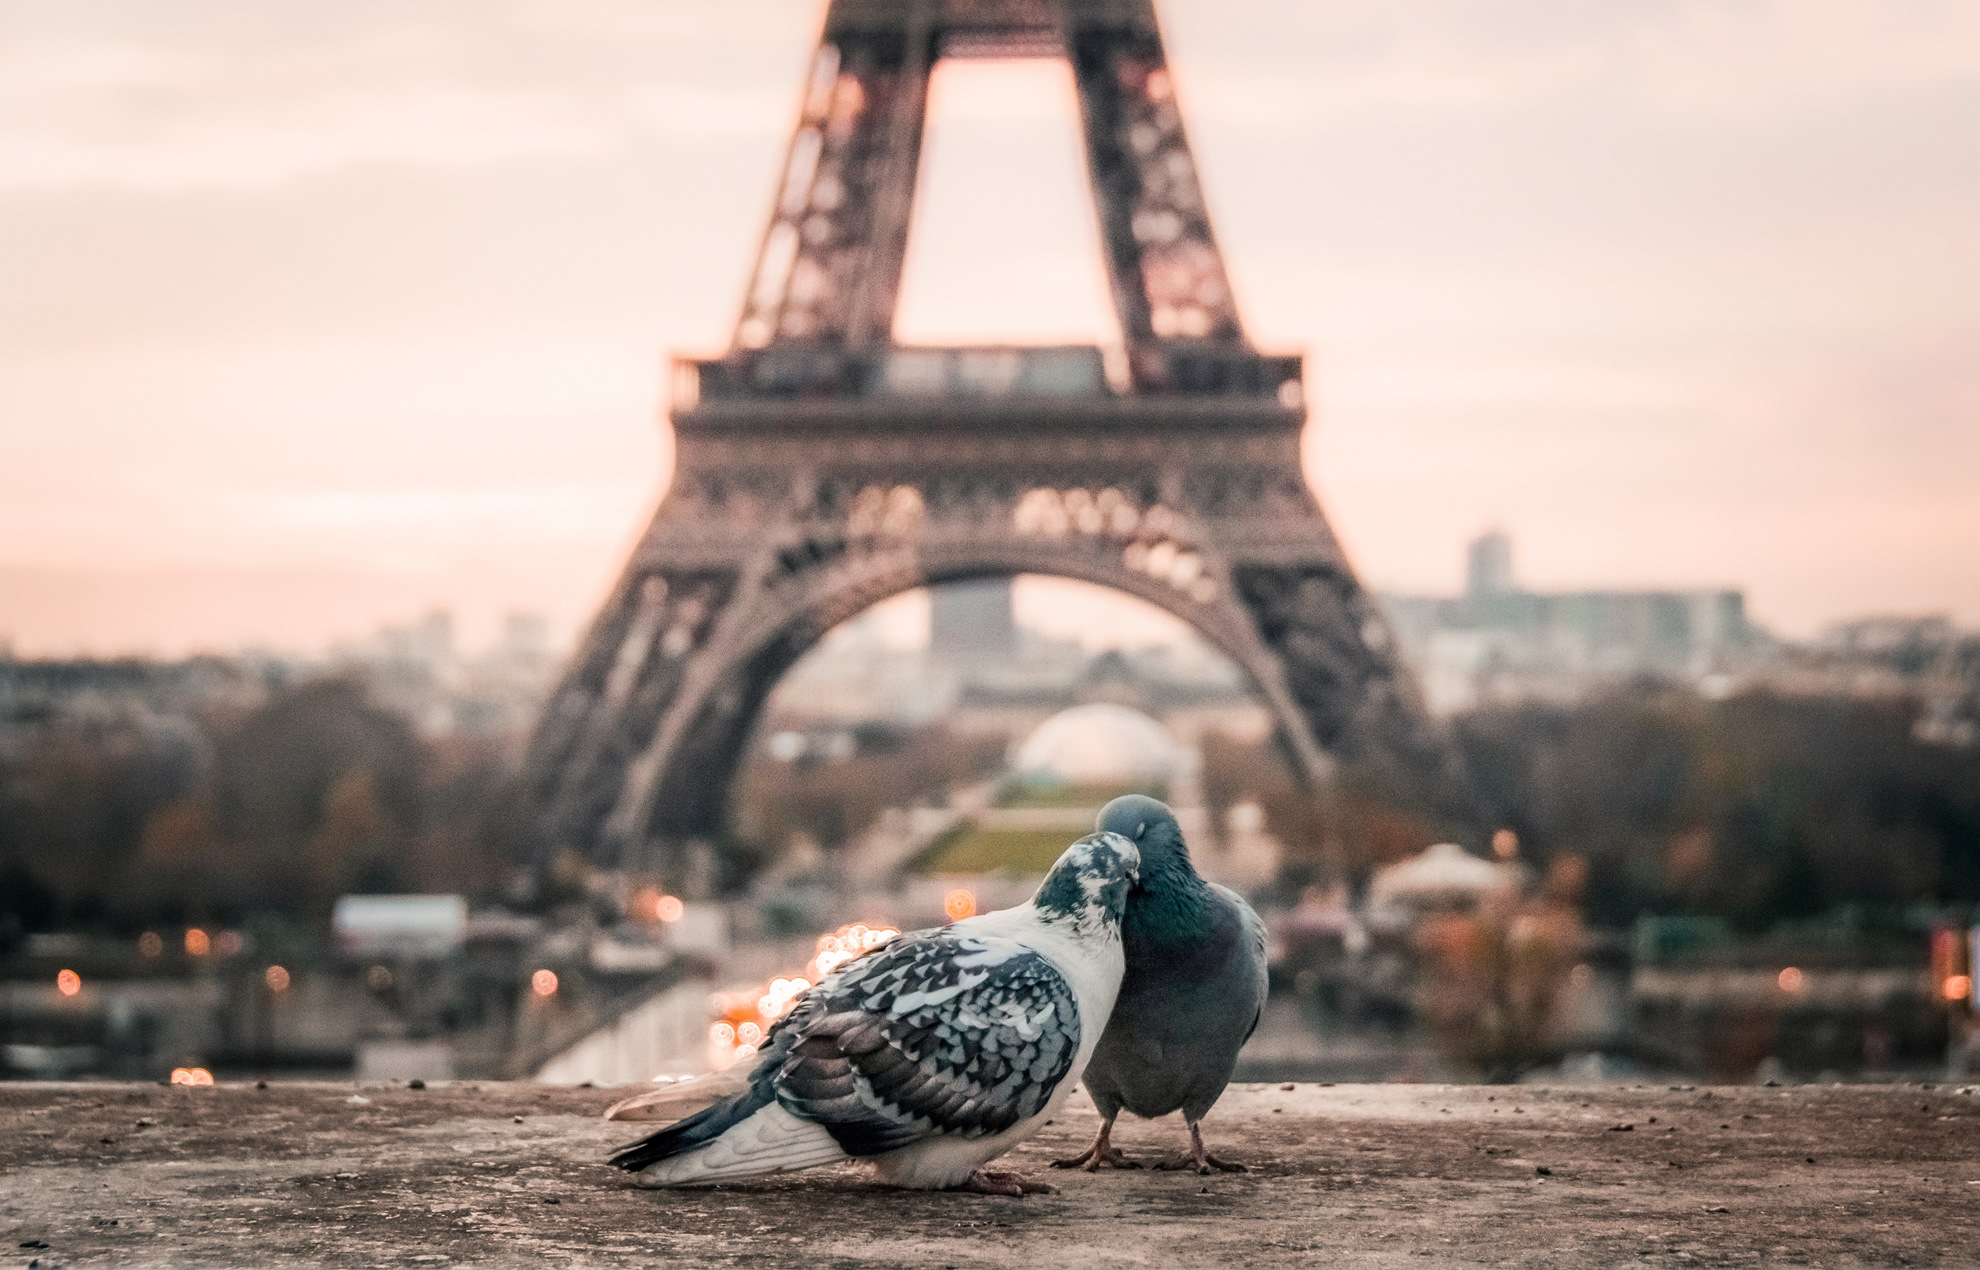 France is filled with romance and you could get married ther